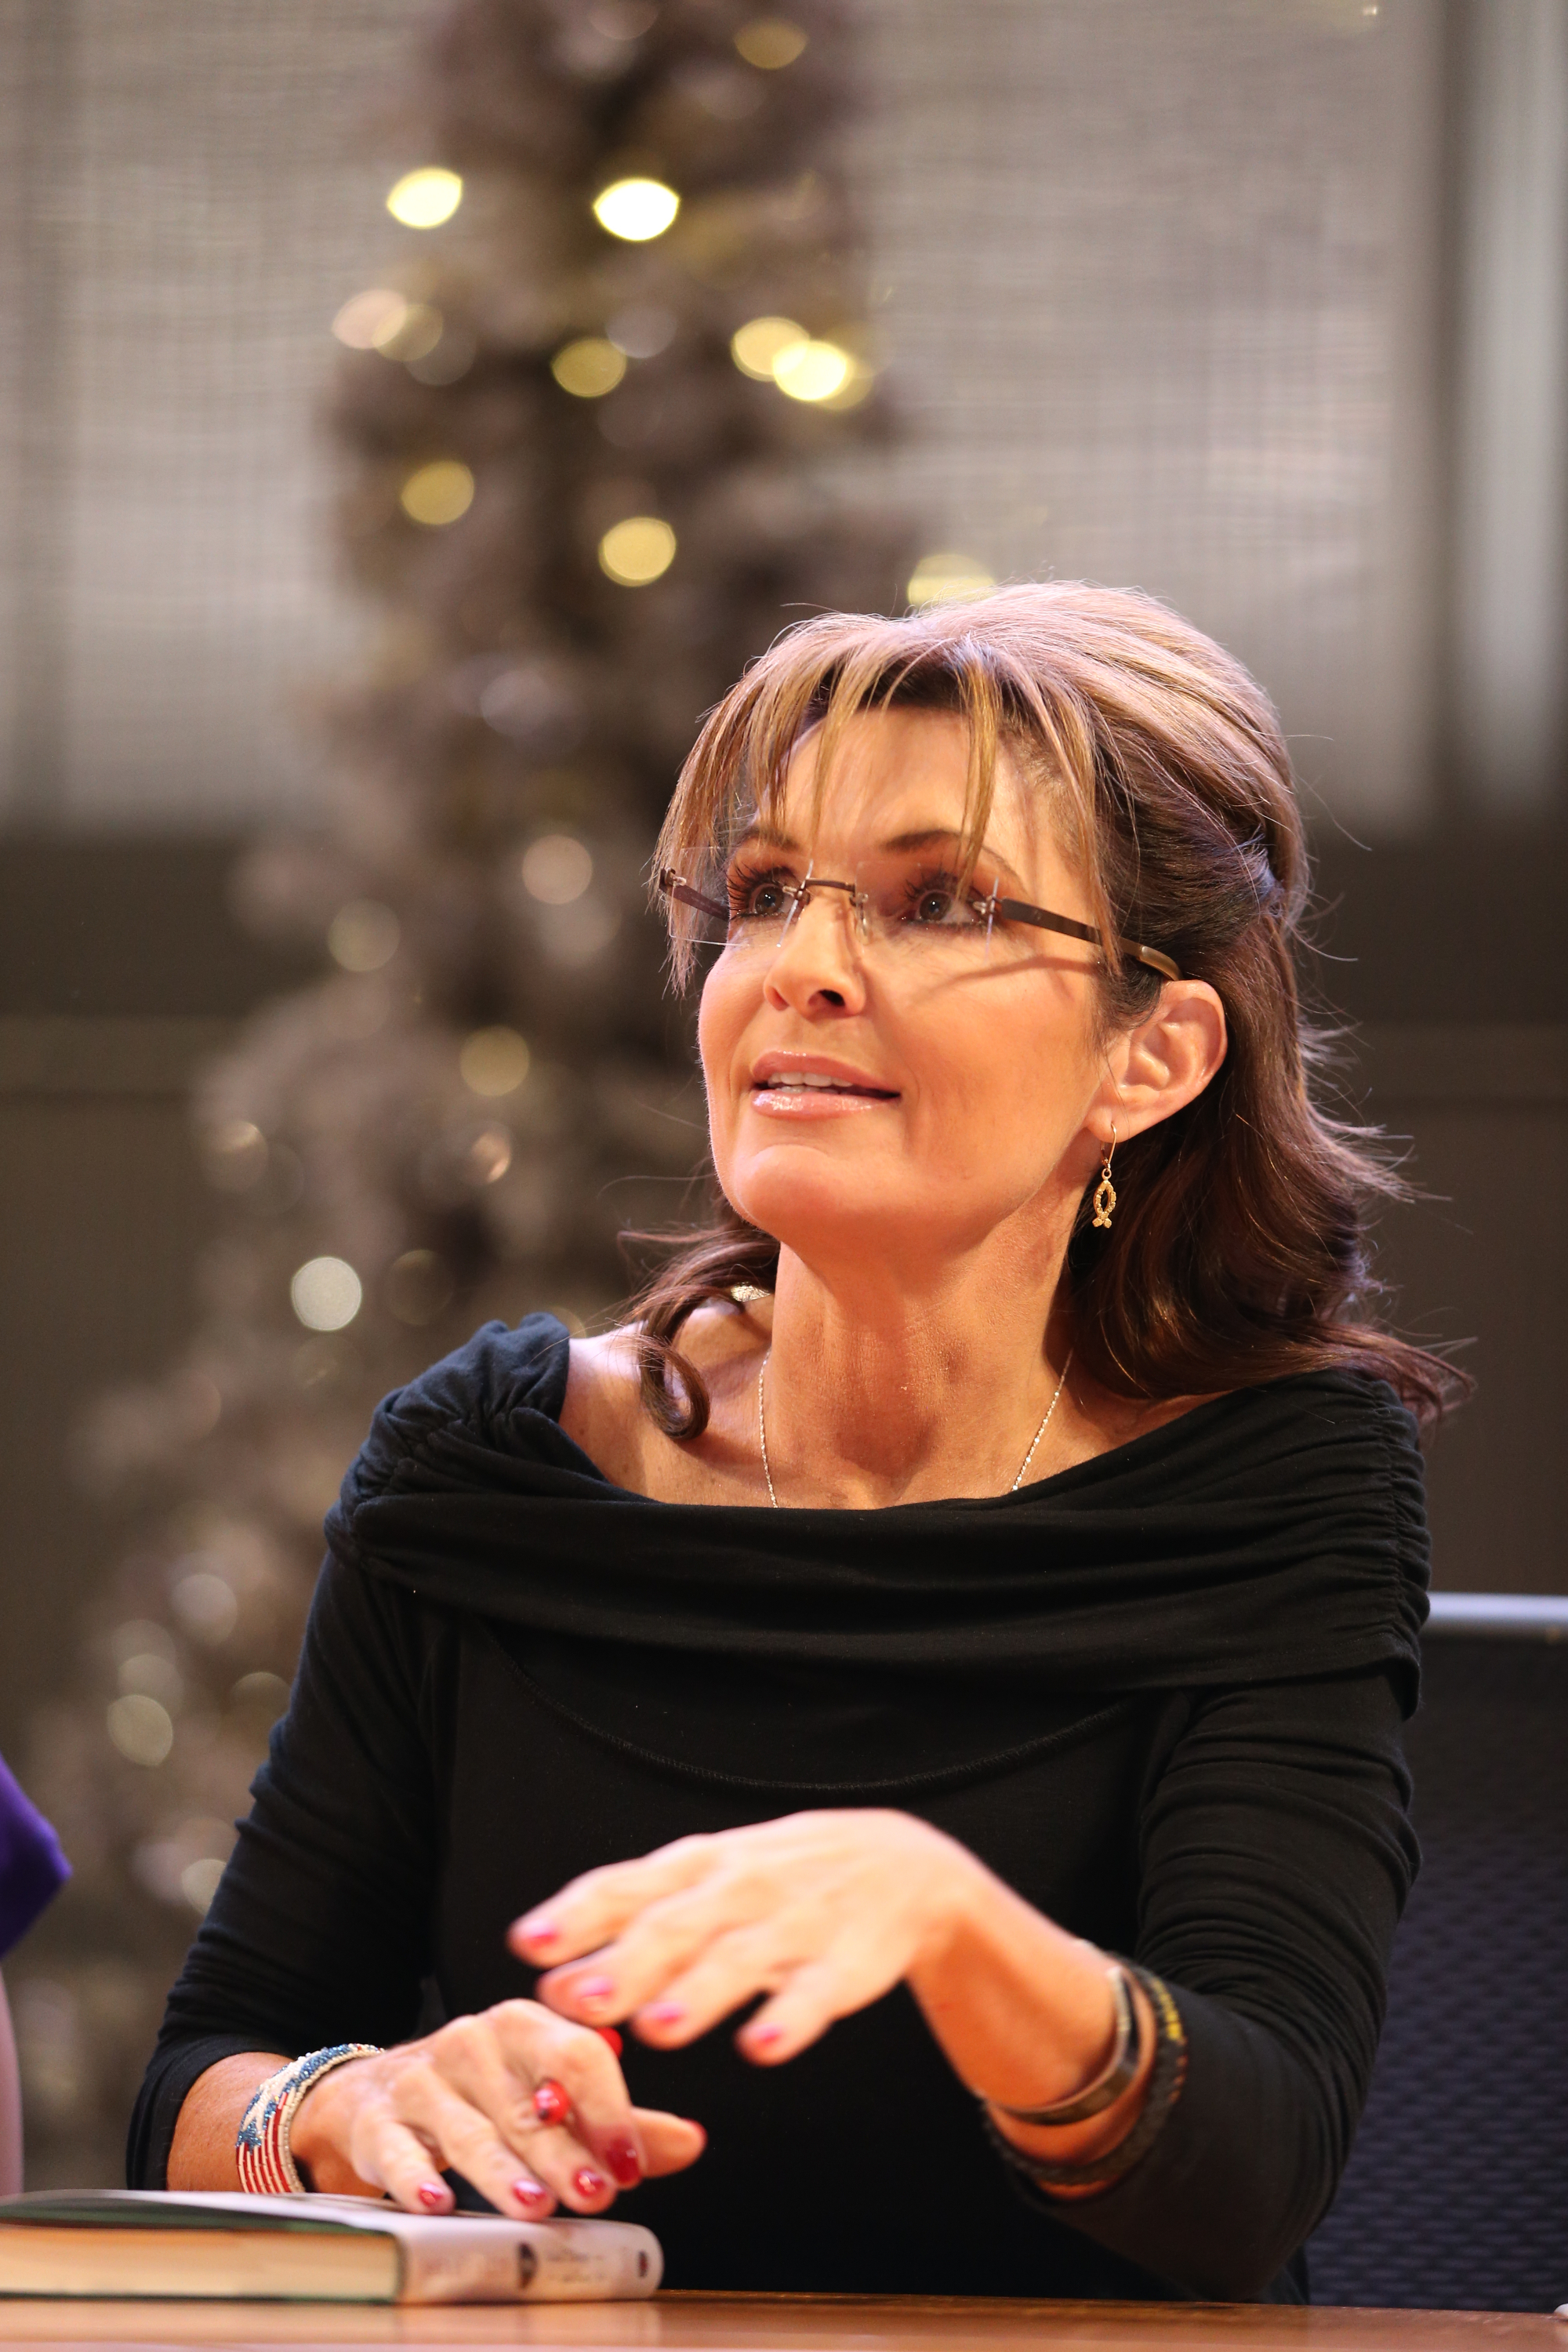 Sarah Palin signs copies of her new book  Good Tidings and Great Joy: Protecting the Heart of Christmas  on Nov. 21, 2013 at Mall of America in Bloomington, Minn.